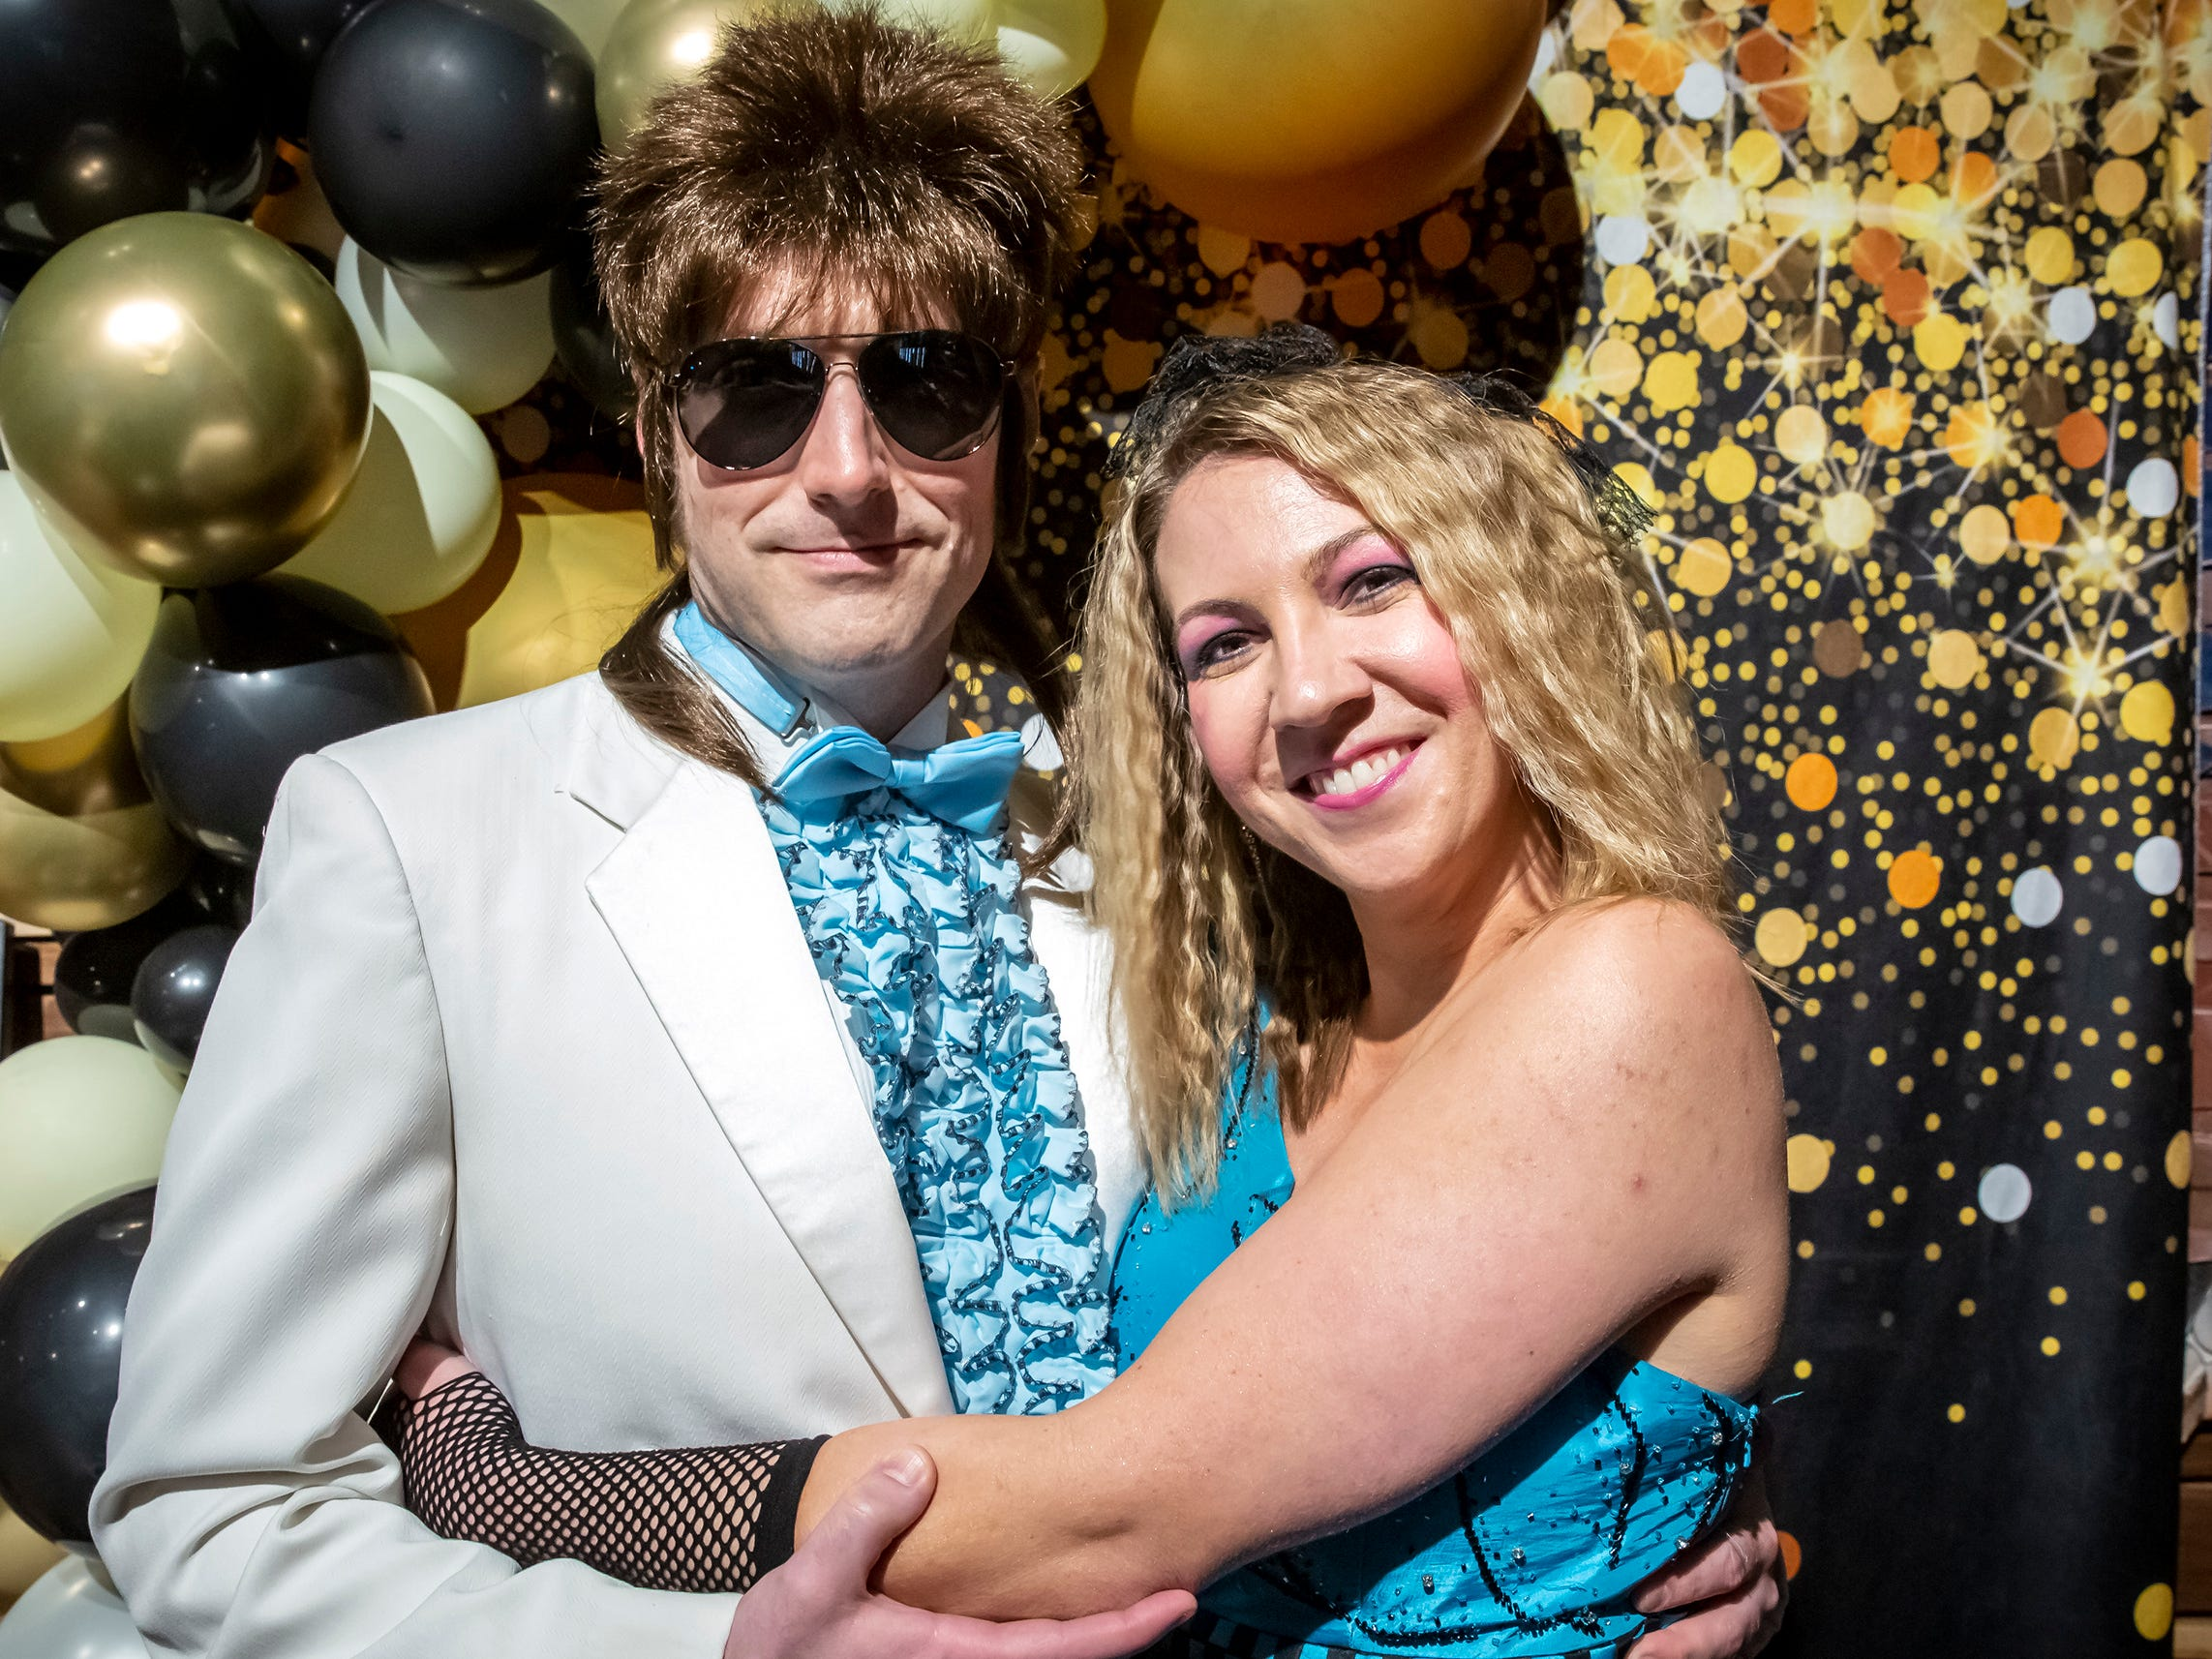 Mark Connolly and Sarah Ryman at the Adult Prom held at Hop Springs to benefit Kymari House, Saturday, May 11, 2019.